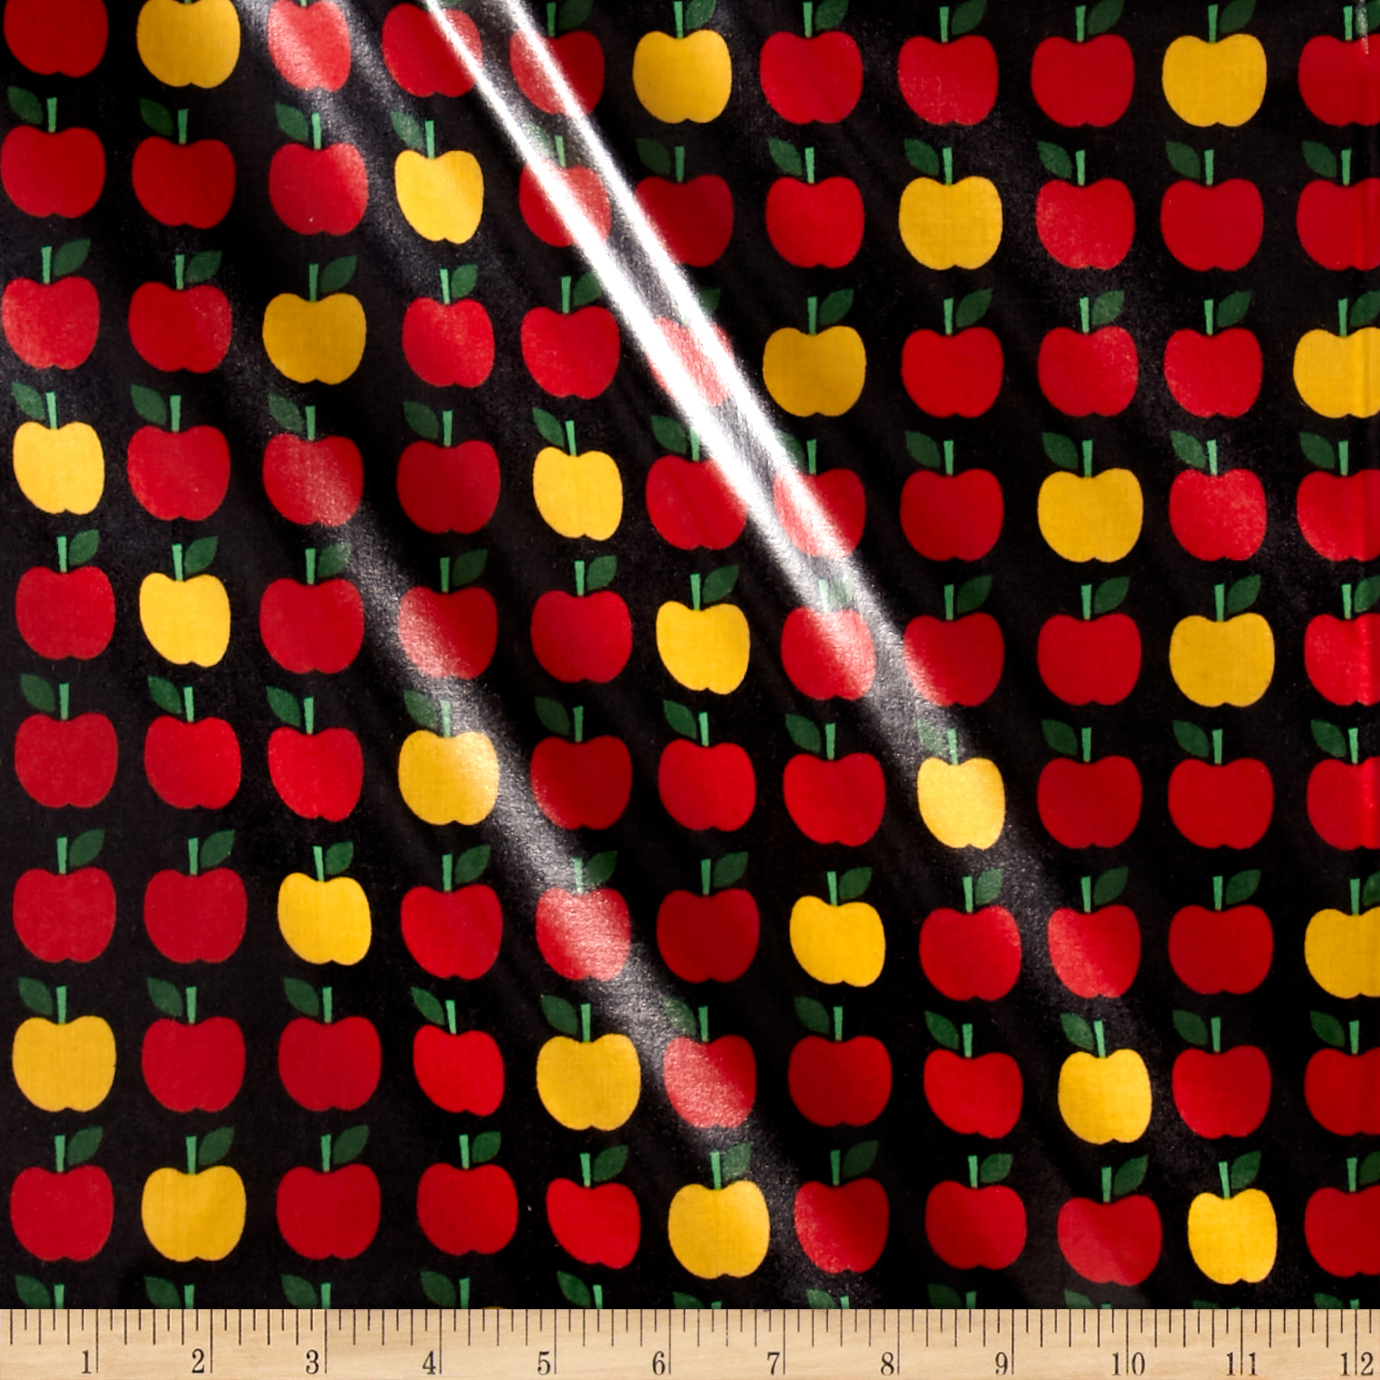 Kaufman Back to School Slicker Laminated Cotton Apples Jet Fabric by Kaufman in USA